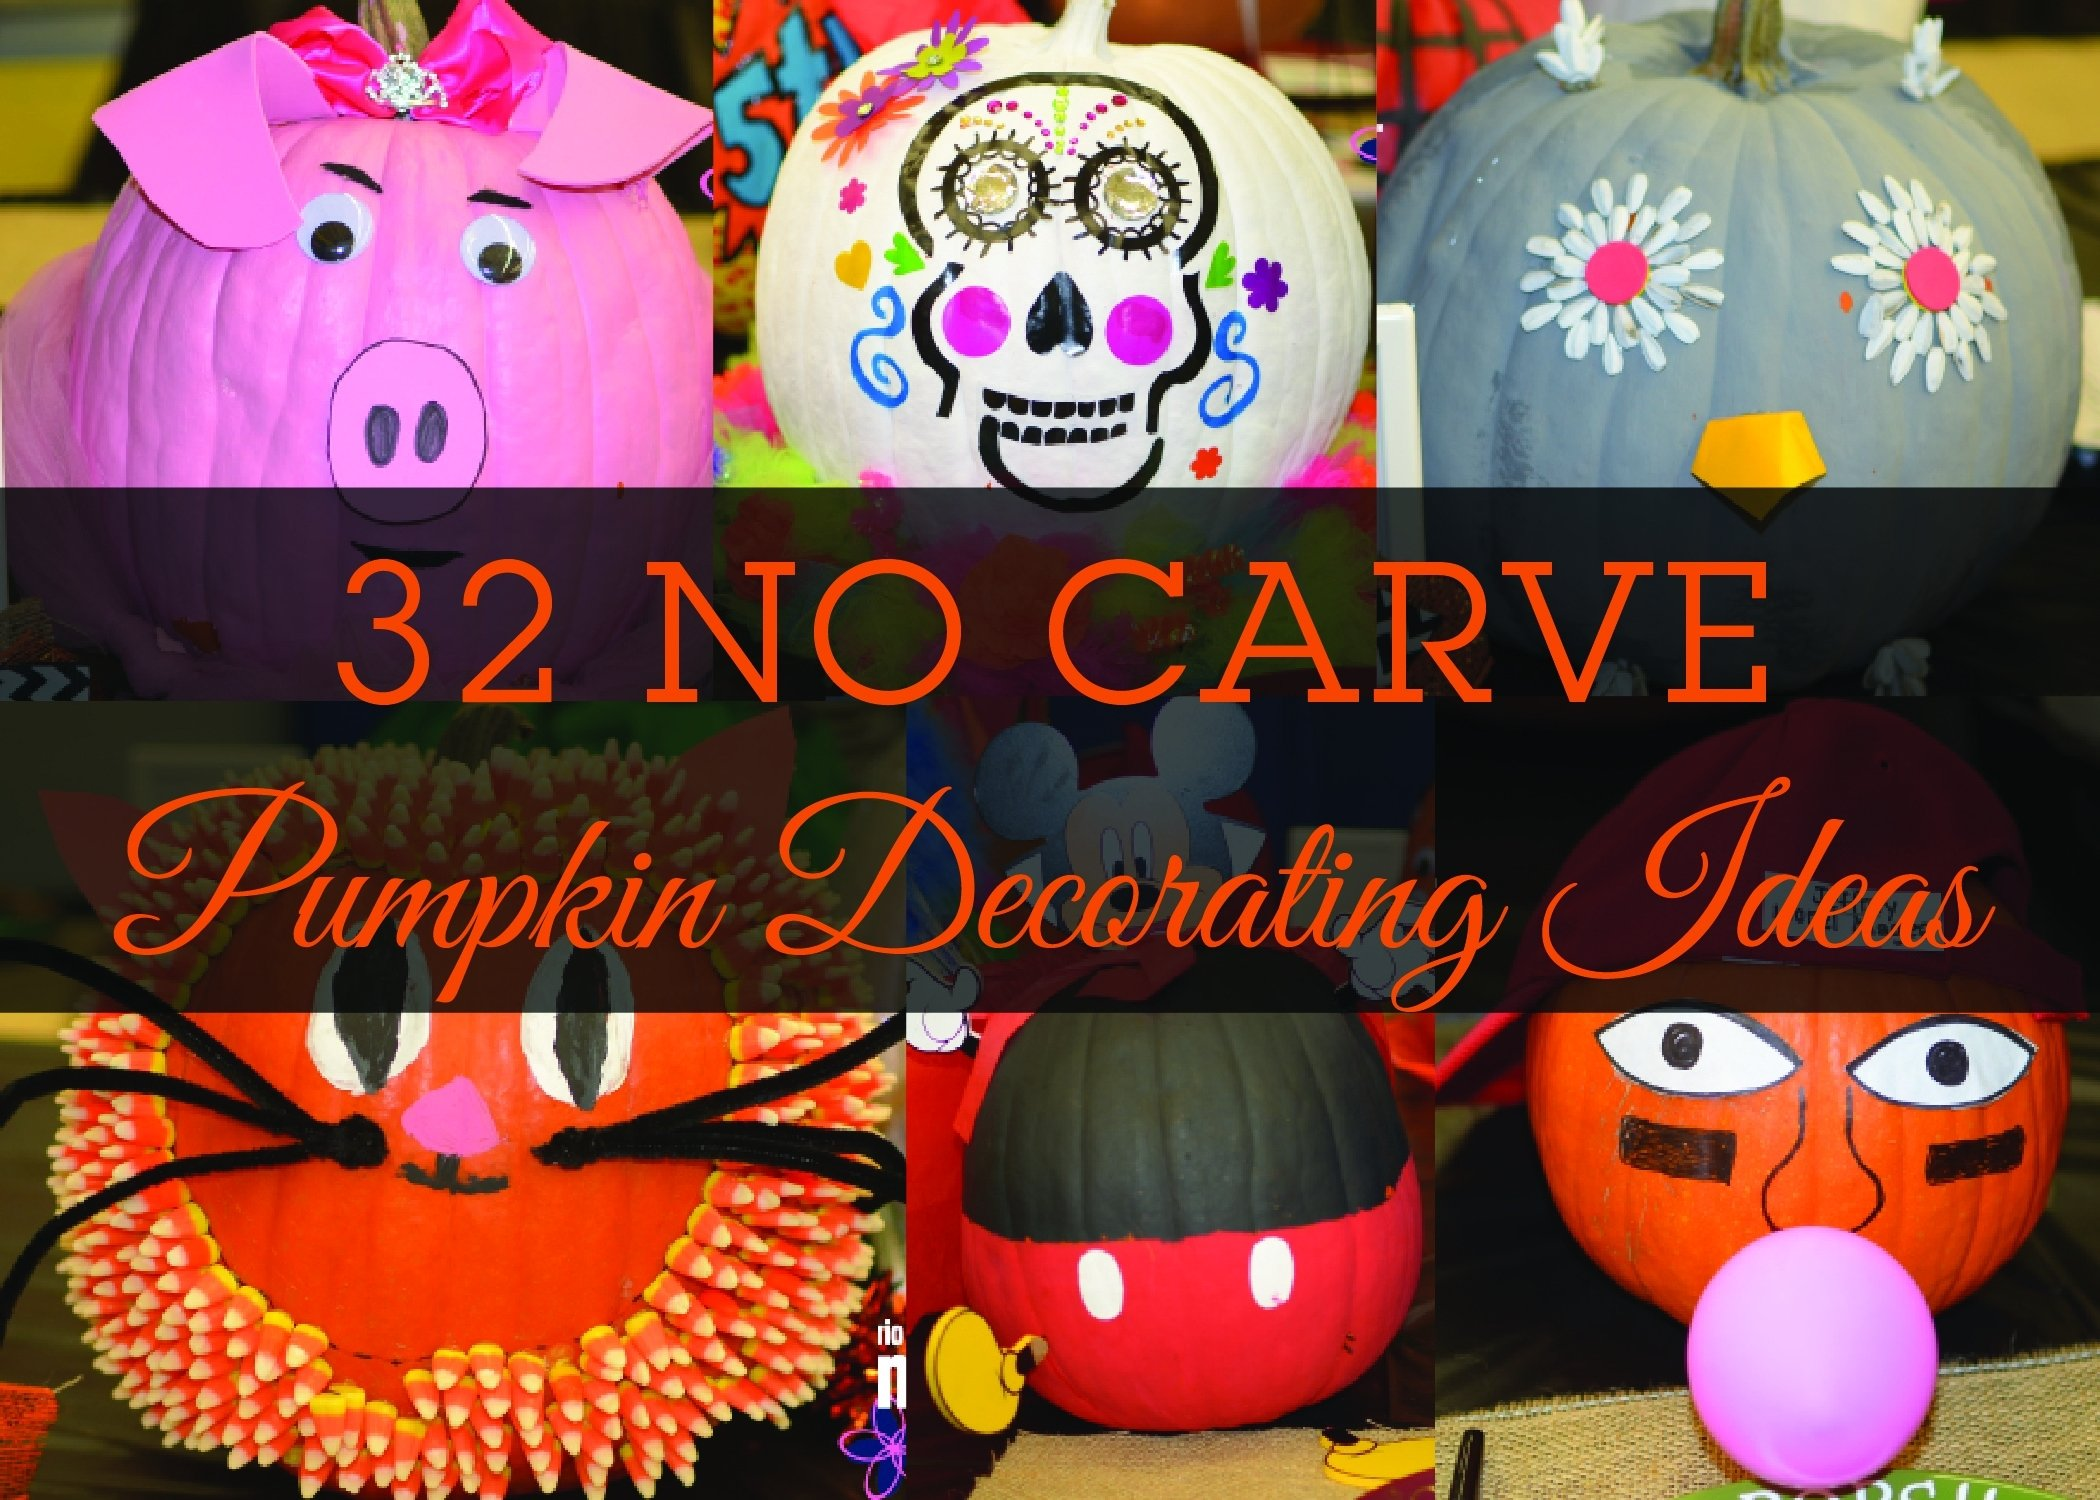 10 Unique Decorating Pumpkin Ideas Without Carving 32 no carve pumpkin decorating ideas 5 2020